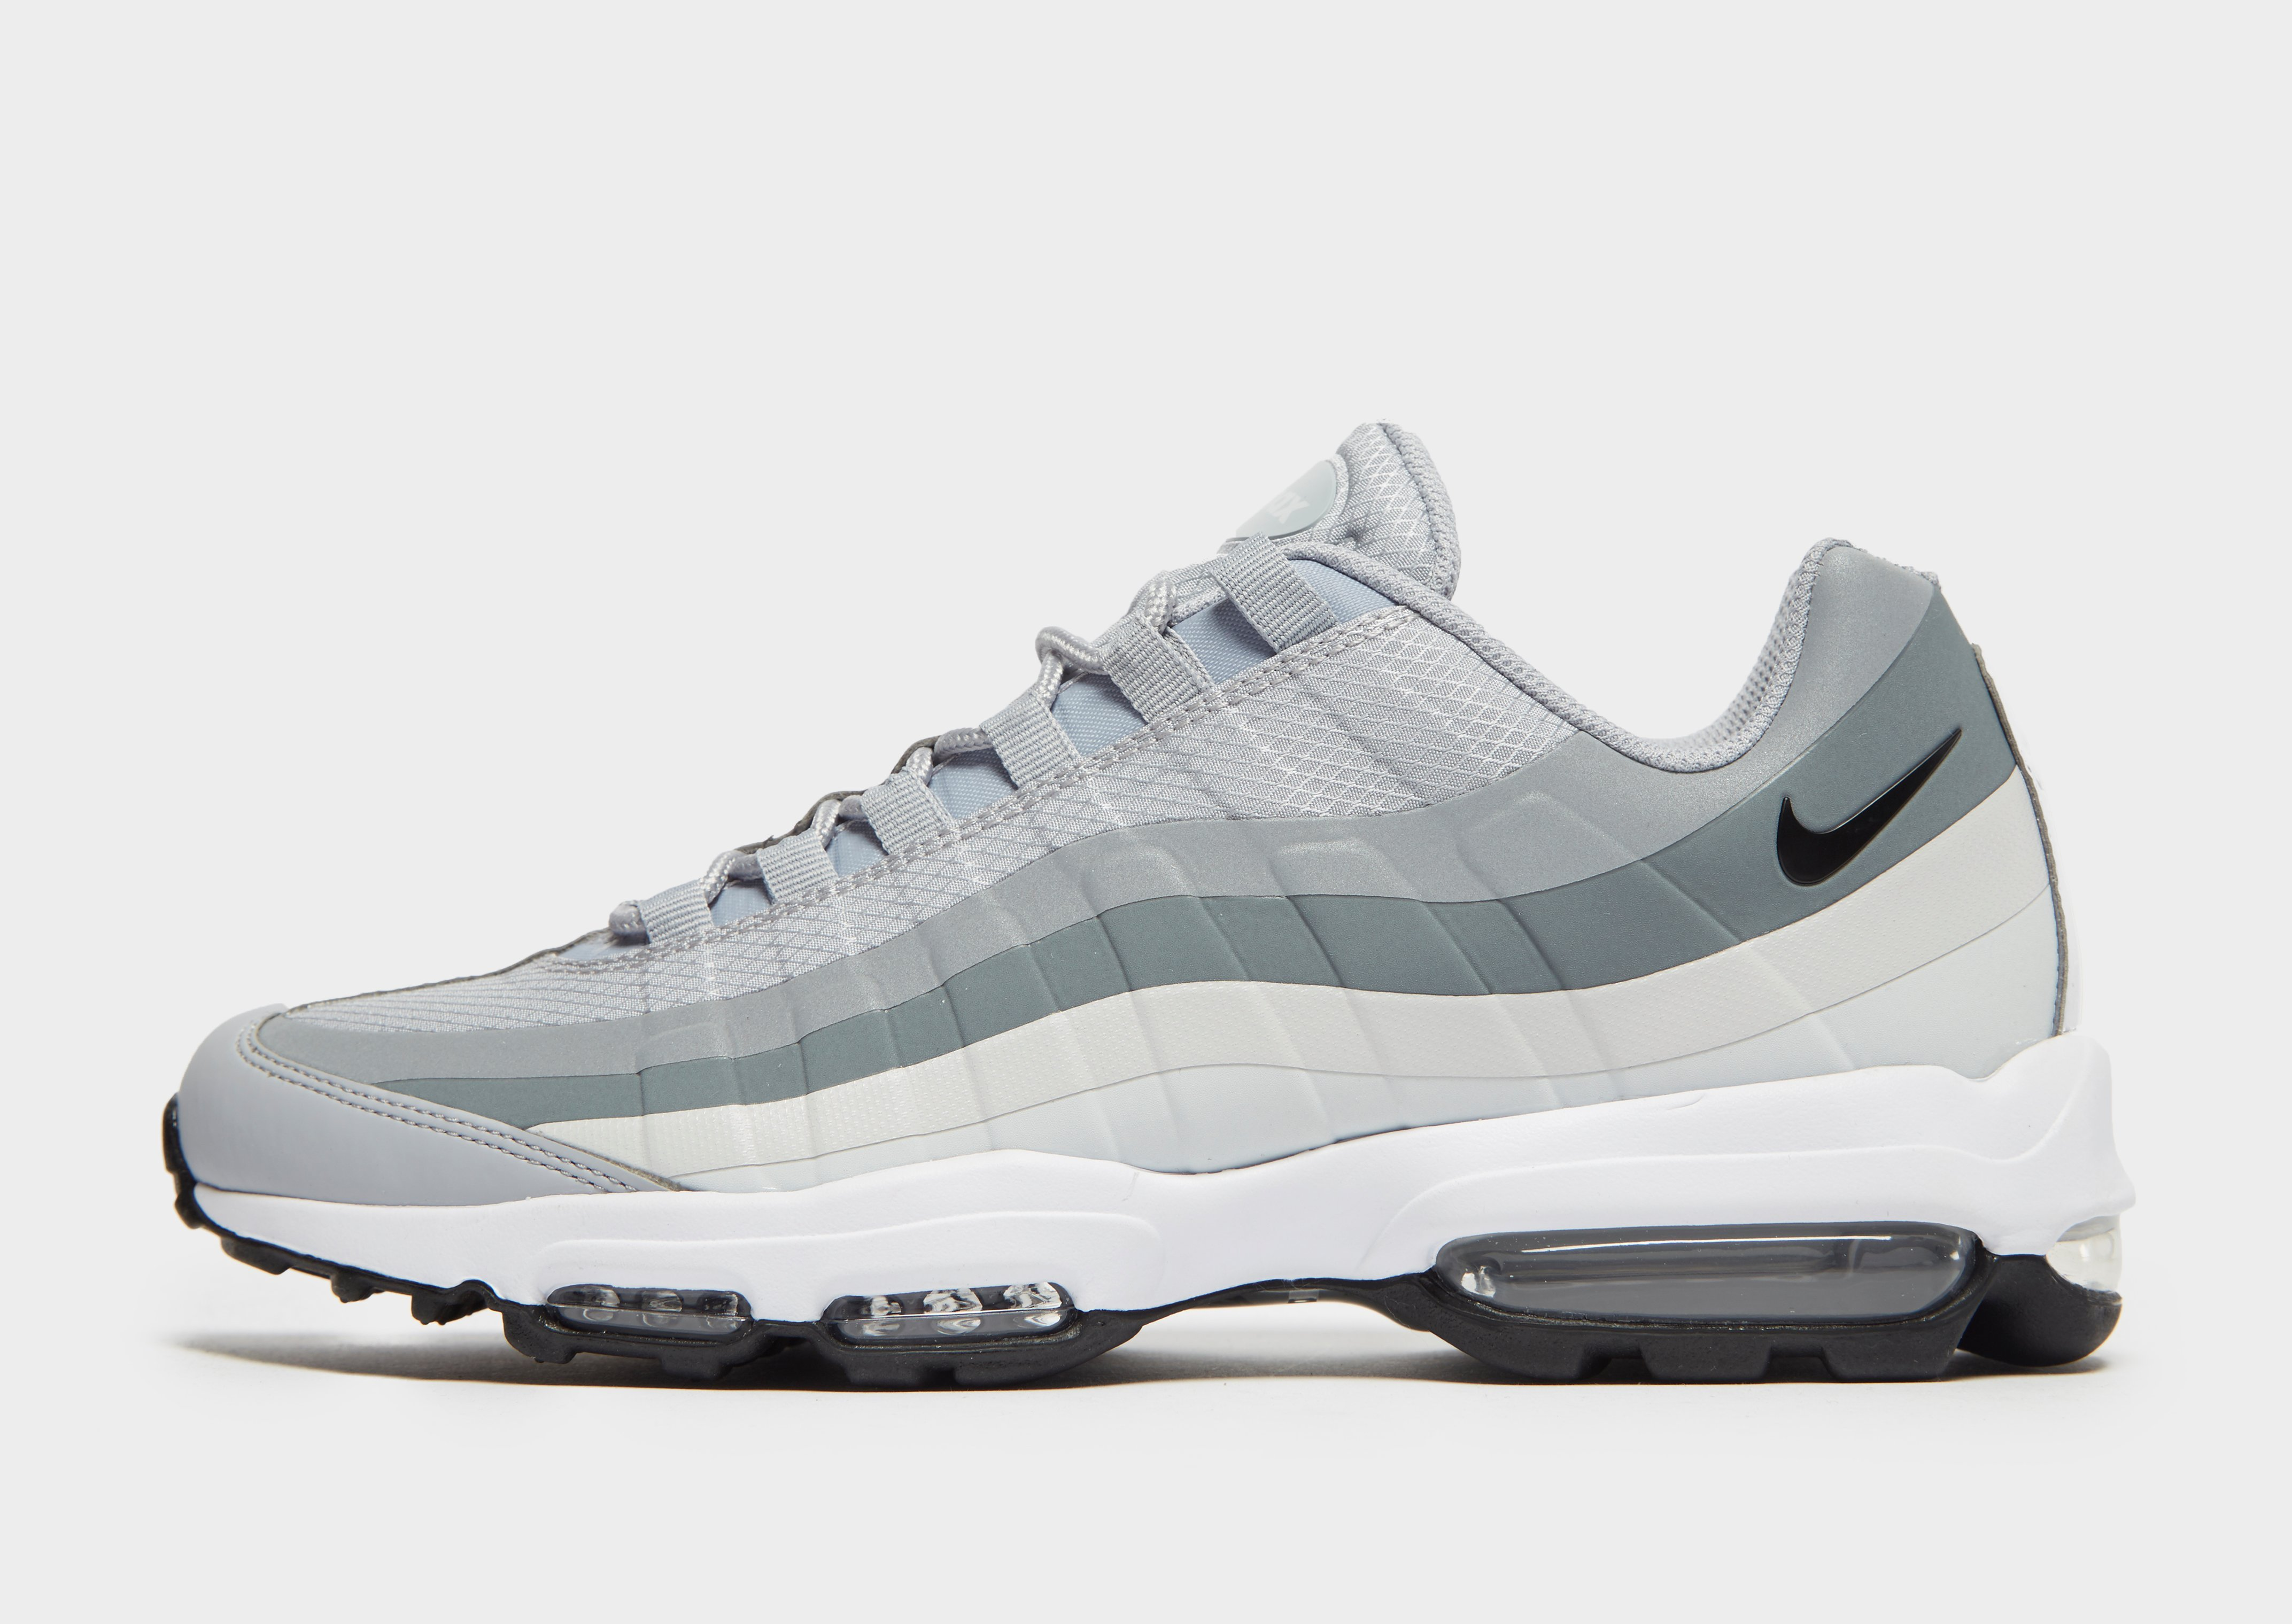 hot sale online 04b8e 56cc1 Nike Air Max 95 Ultra SE | JD Sports